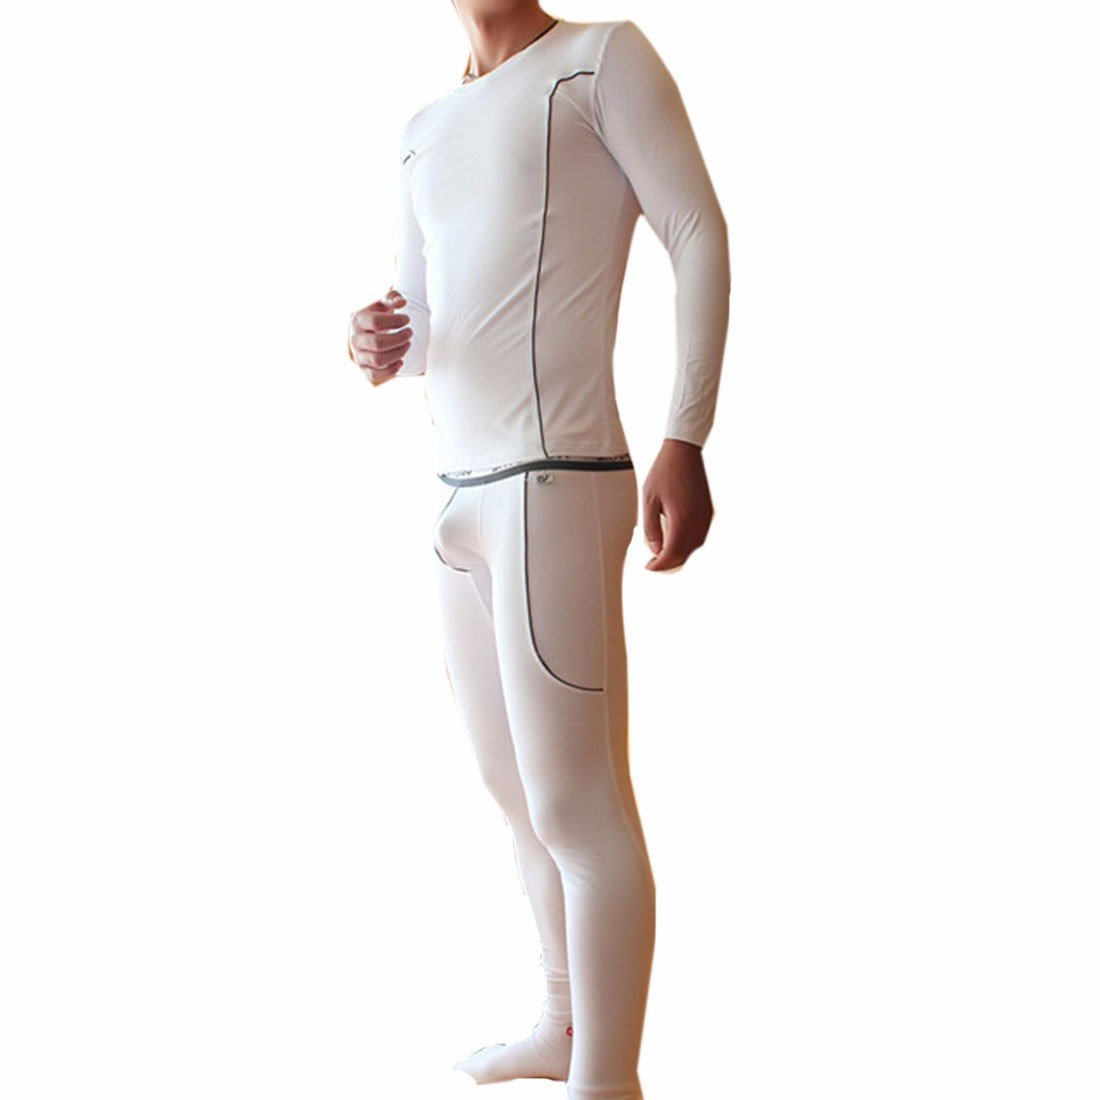 Winter Men Warm Tops Pant Underwear Thermal Long Johns Sets Ensembles Thermiques QIYUN.Z 3024S0322/CA1